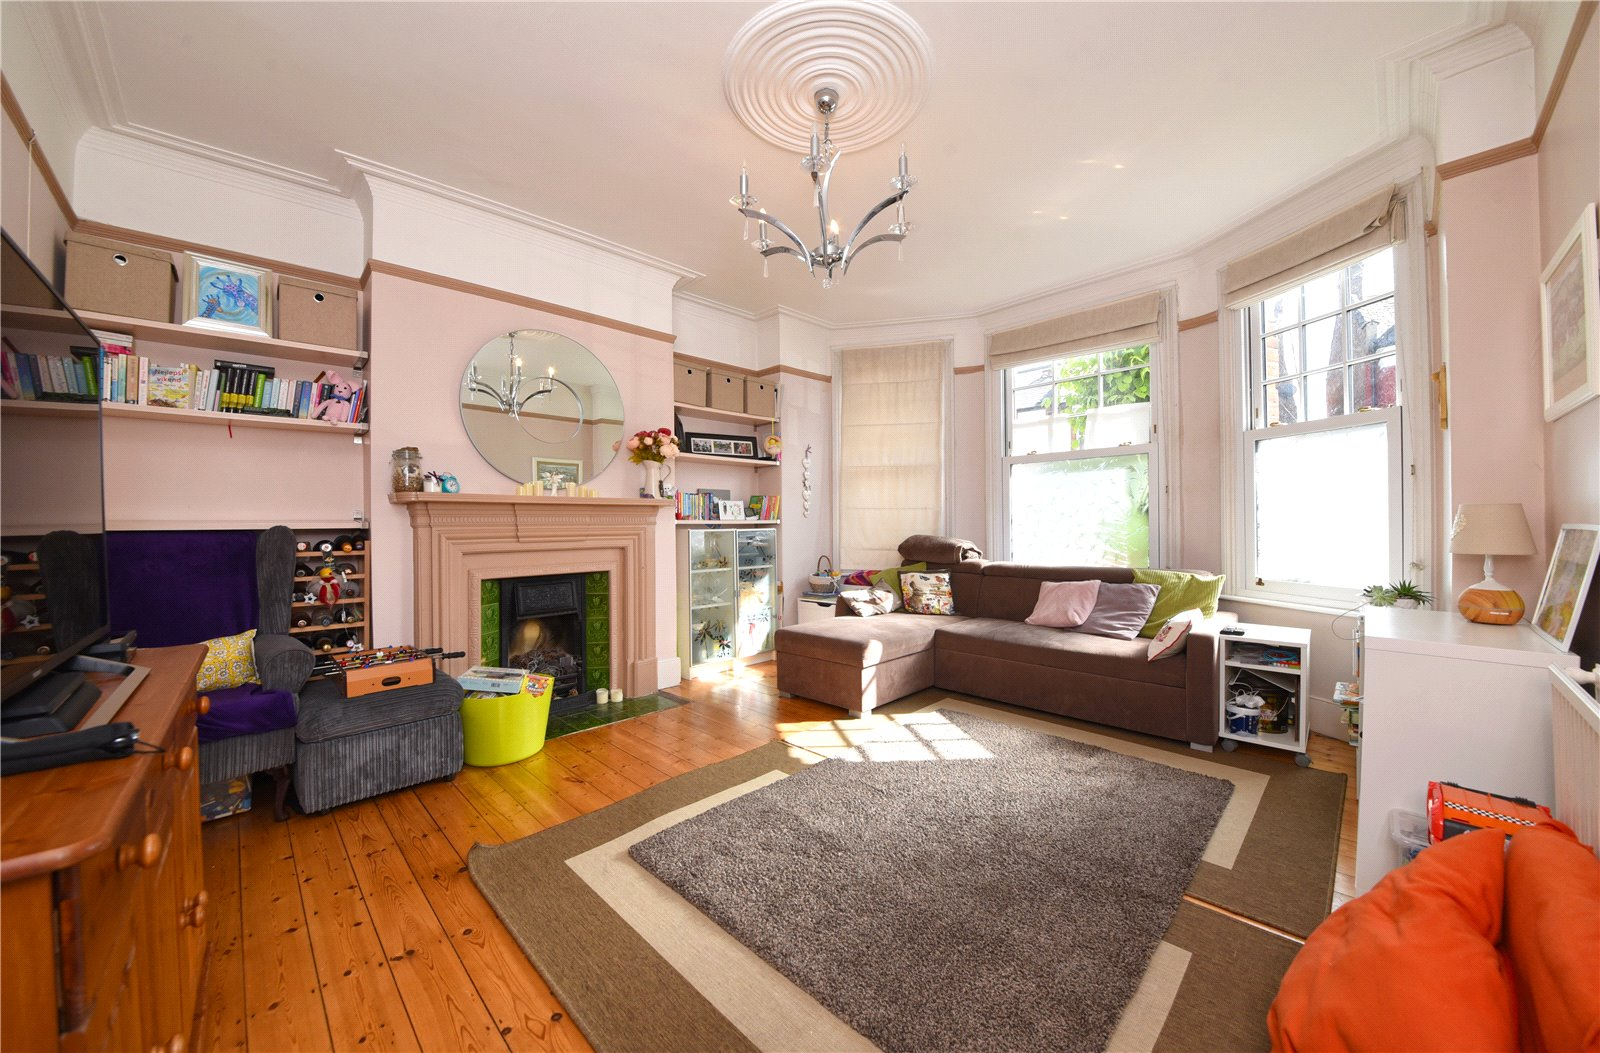 2 bed apartment for sale in East Finchley, N2 0SX  - Property Image 4